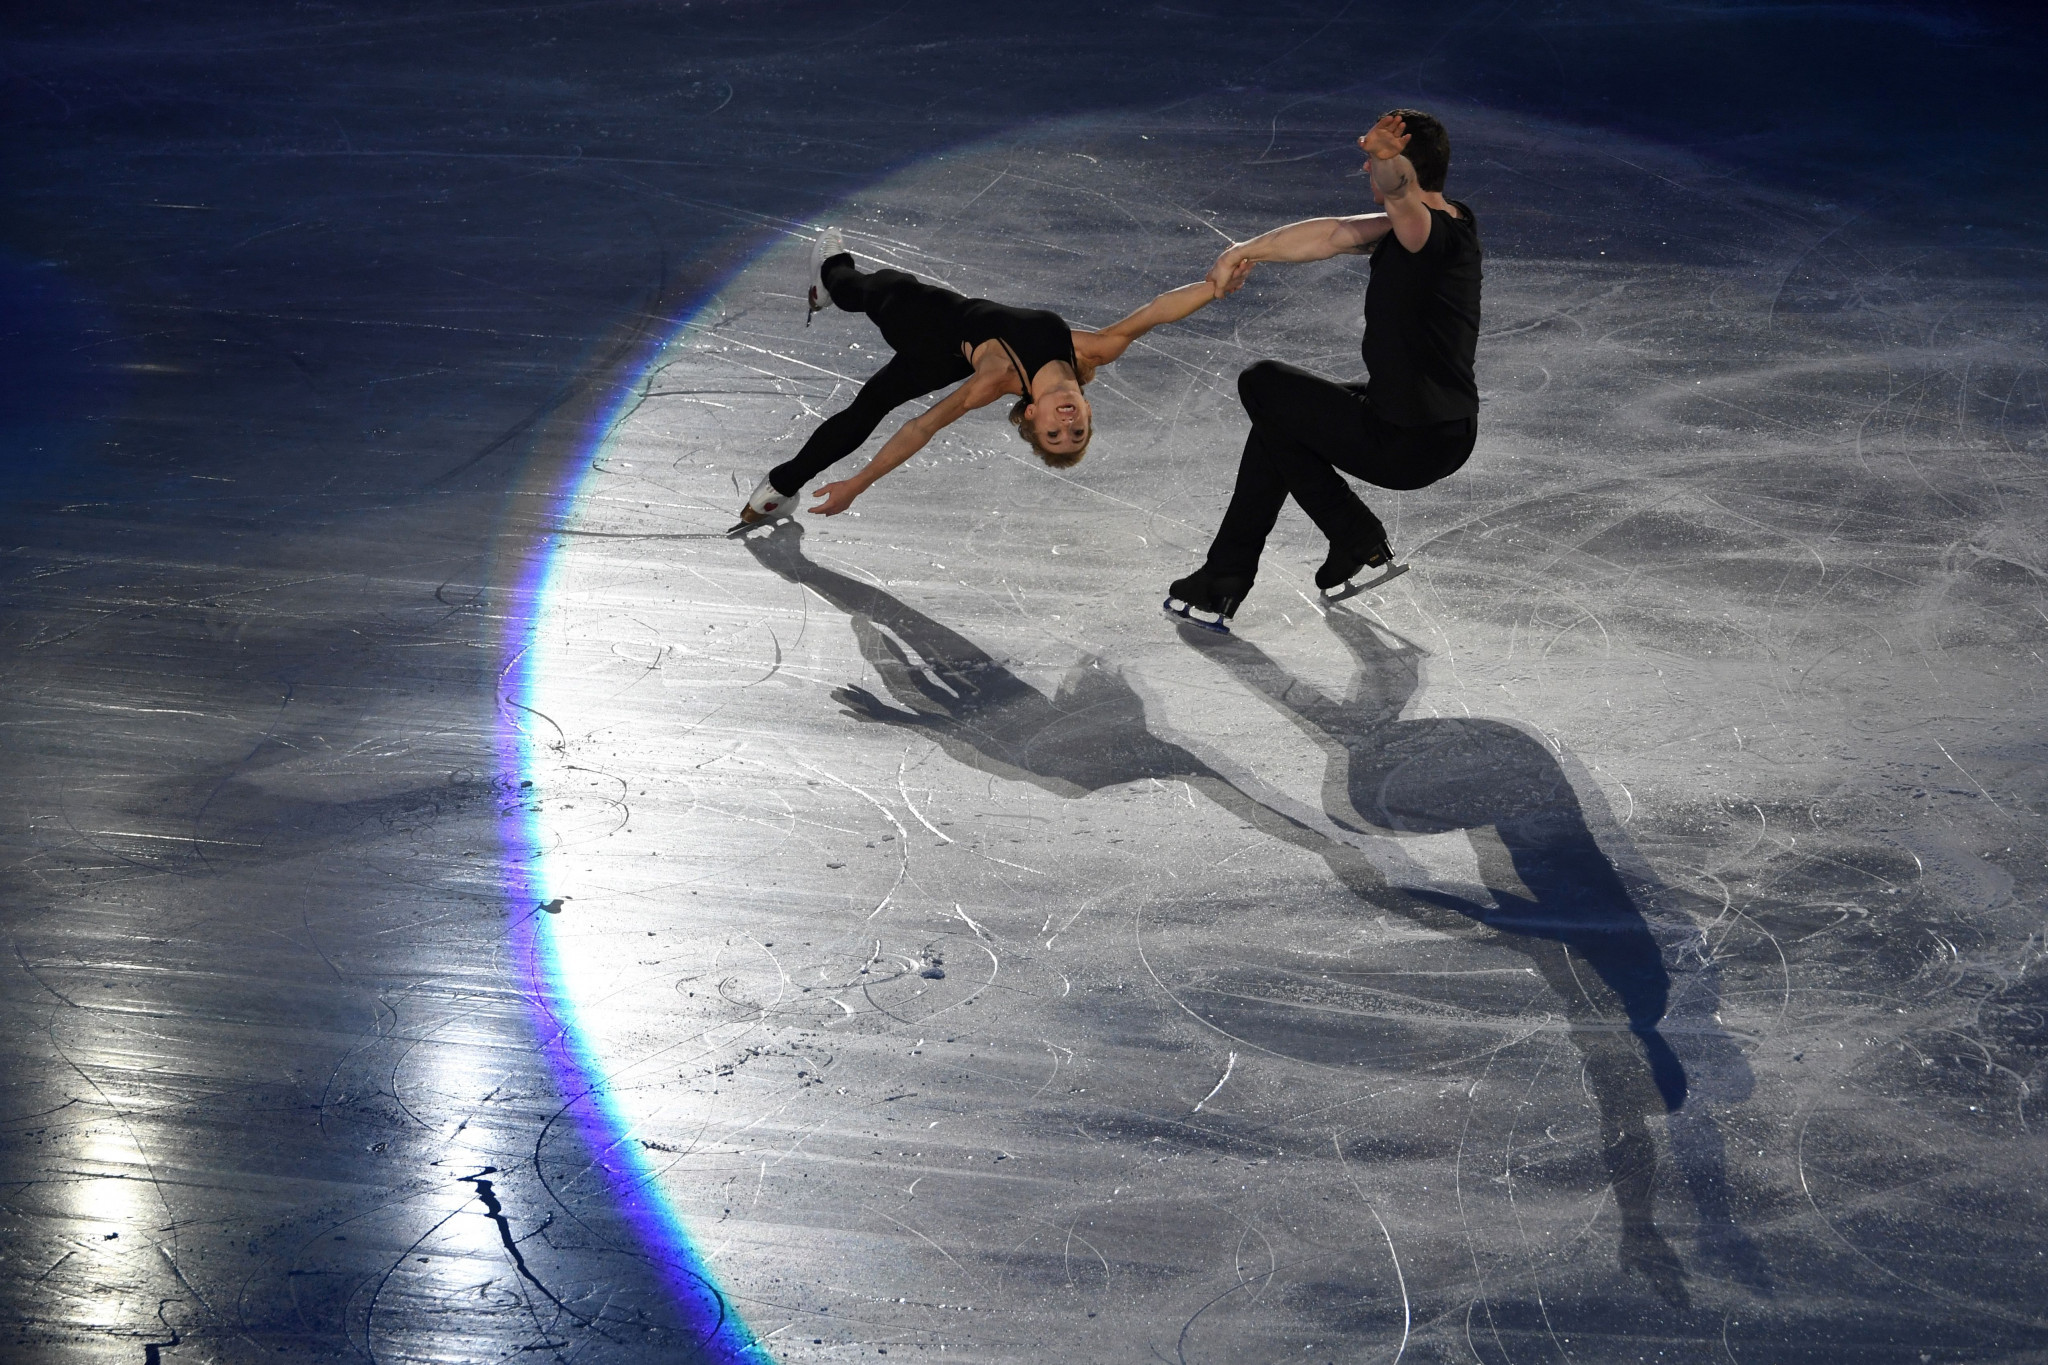 Two-time World Championship pairs skaters medallists Aljona Savchenko and Bruno Massot have been selected by Germany for Pyeongchang 2018 ©Getty Images